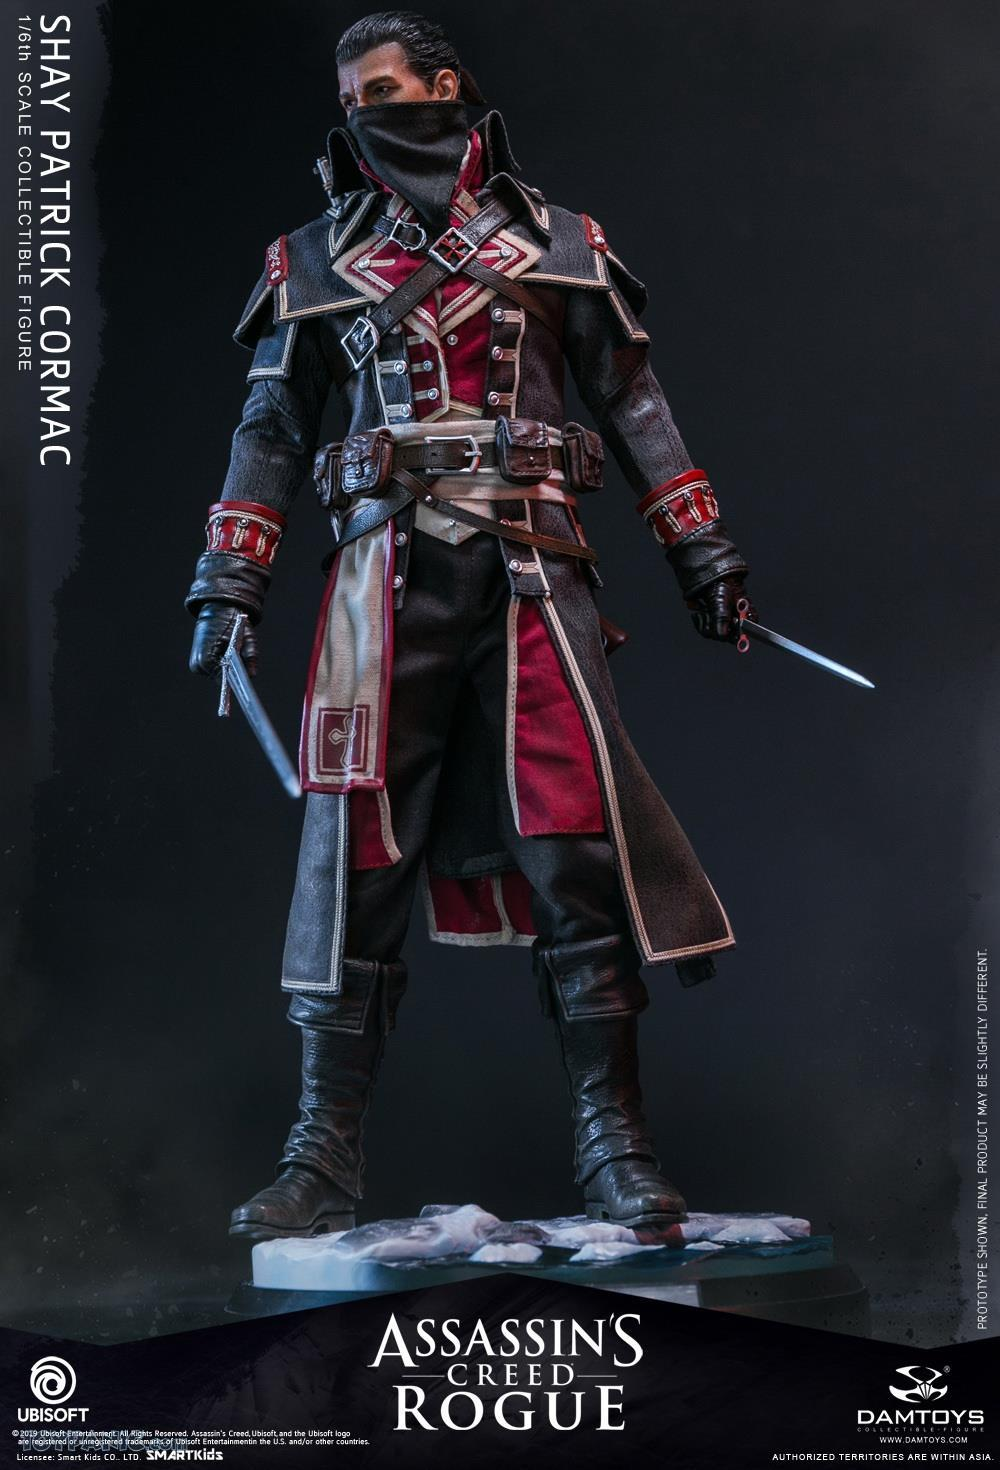 male - NEW PRODUCT: DAMTOYS: Assassins Creed Rogue - 1/6th scale Shay Patrick Cormac Collectible Figure 82220116